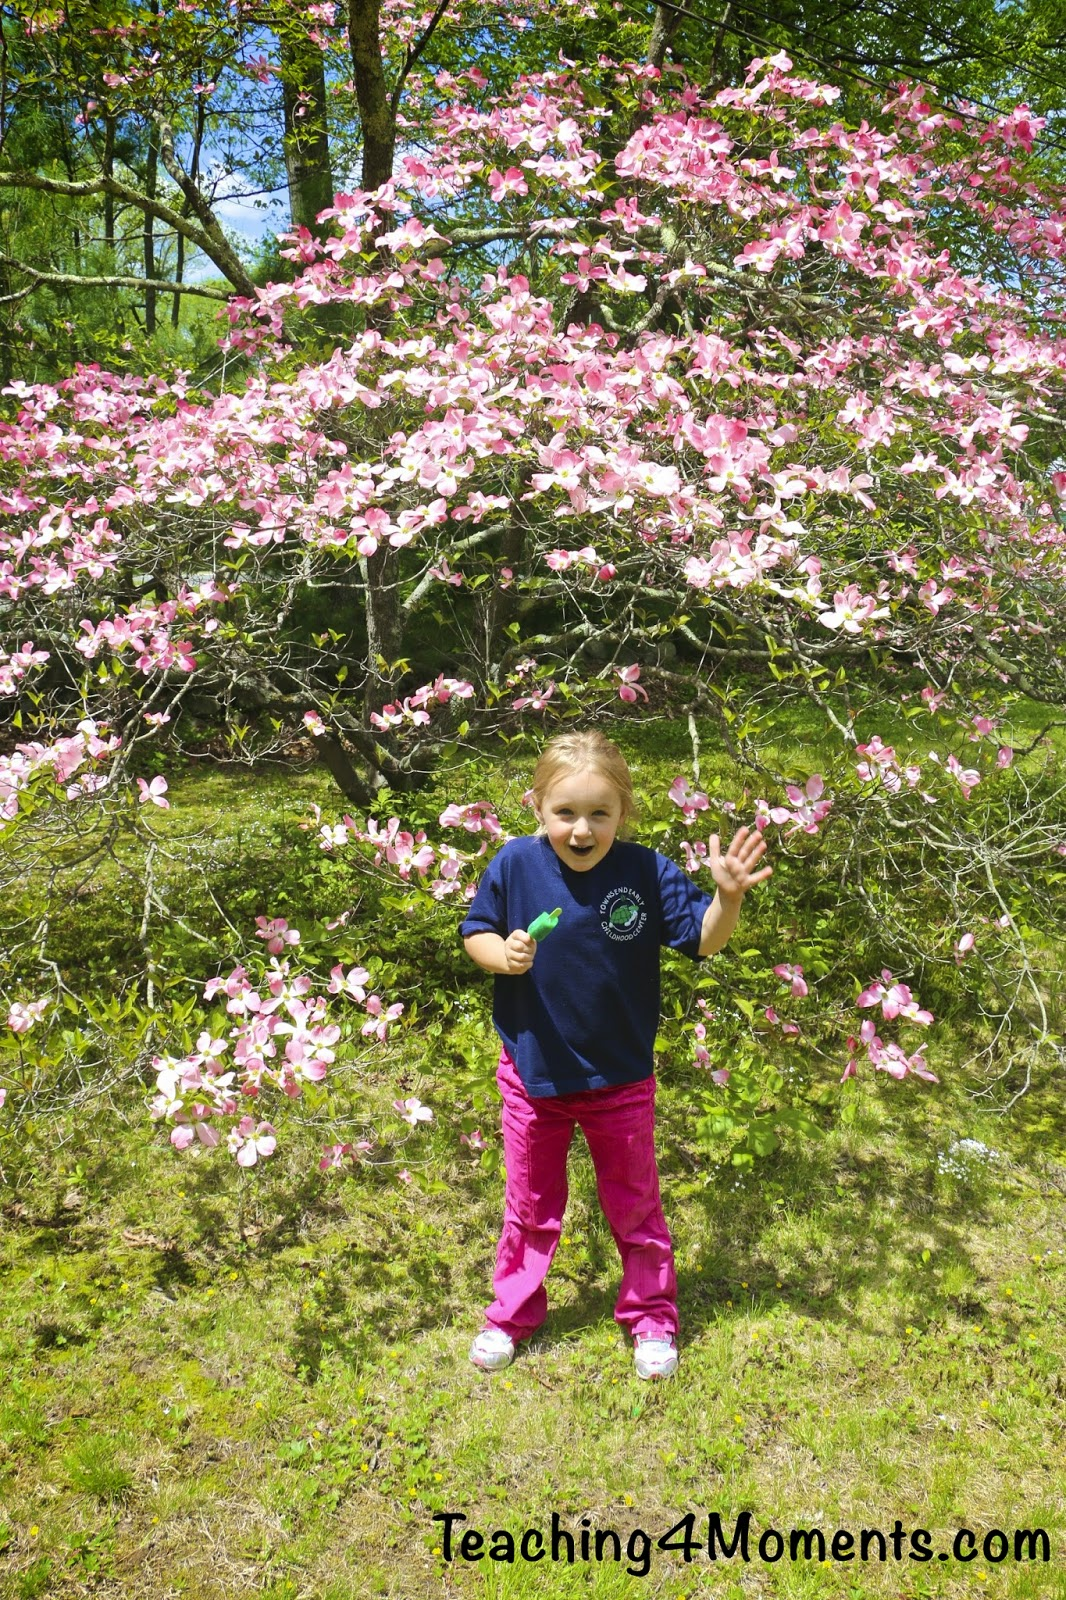 Teaching 4 Moments-Pink Flowering Dogwood with Chloe